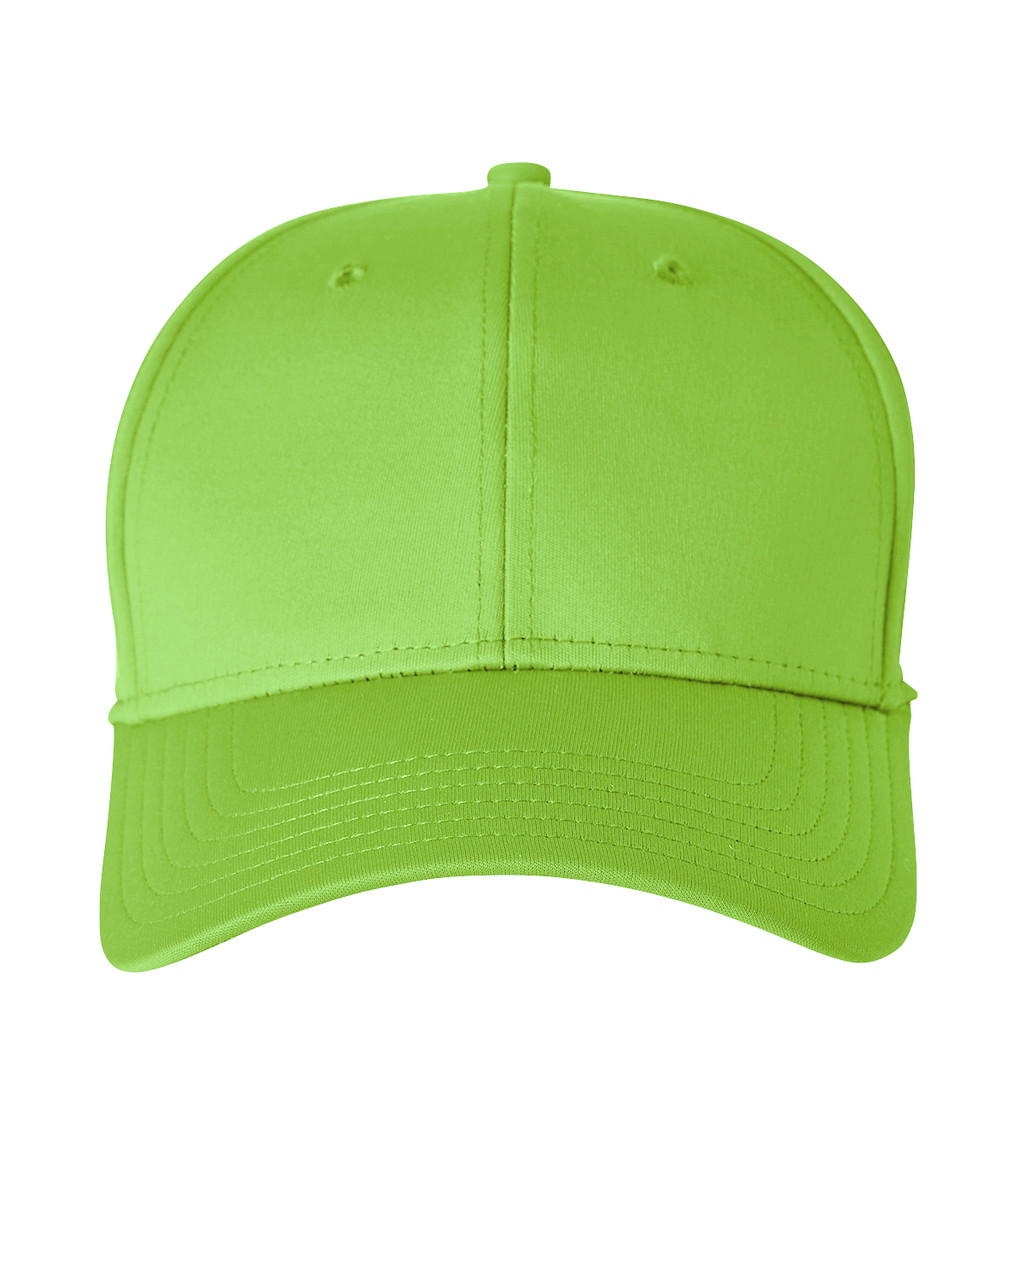 Lime - Front, SH16792 Spyder Adult Frostbit Cap | BlankClothing.ca